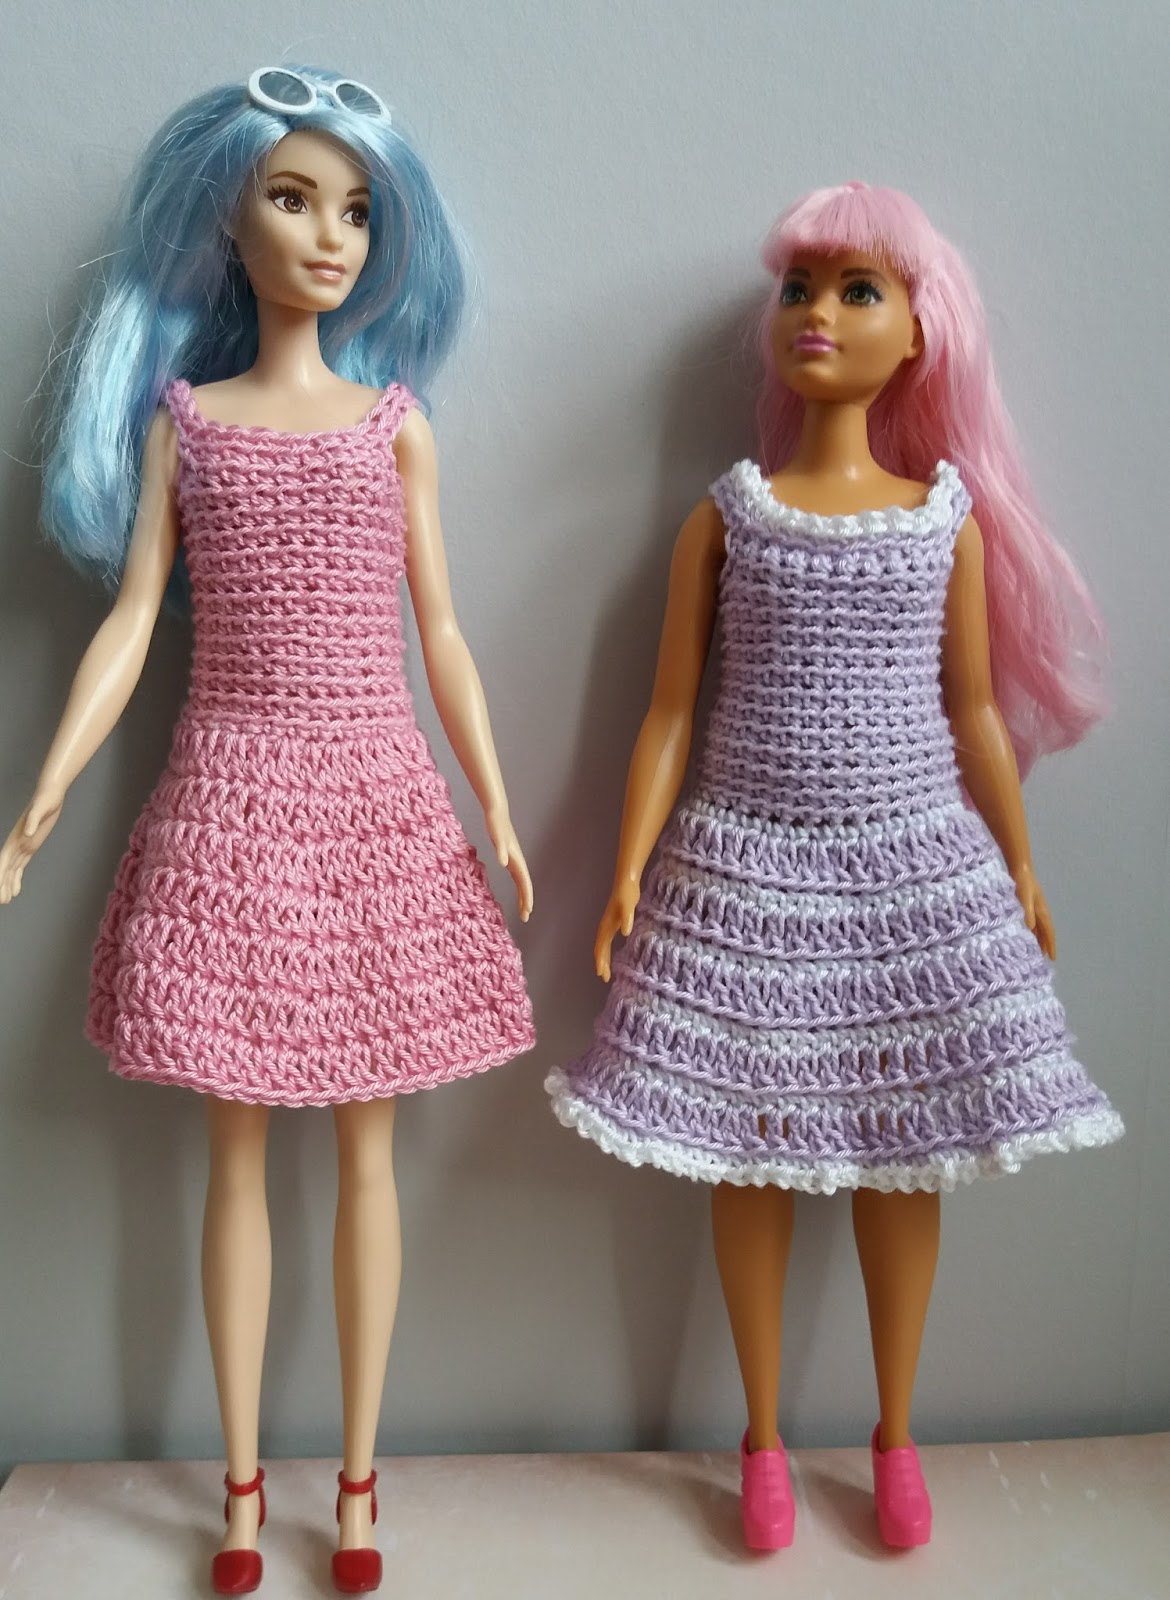 Linmary Knits: Crochet dresses for tall and curvy Fashionista Barbie